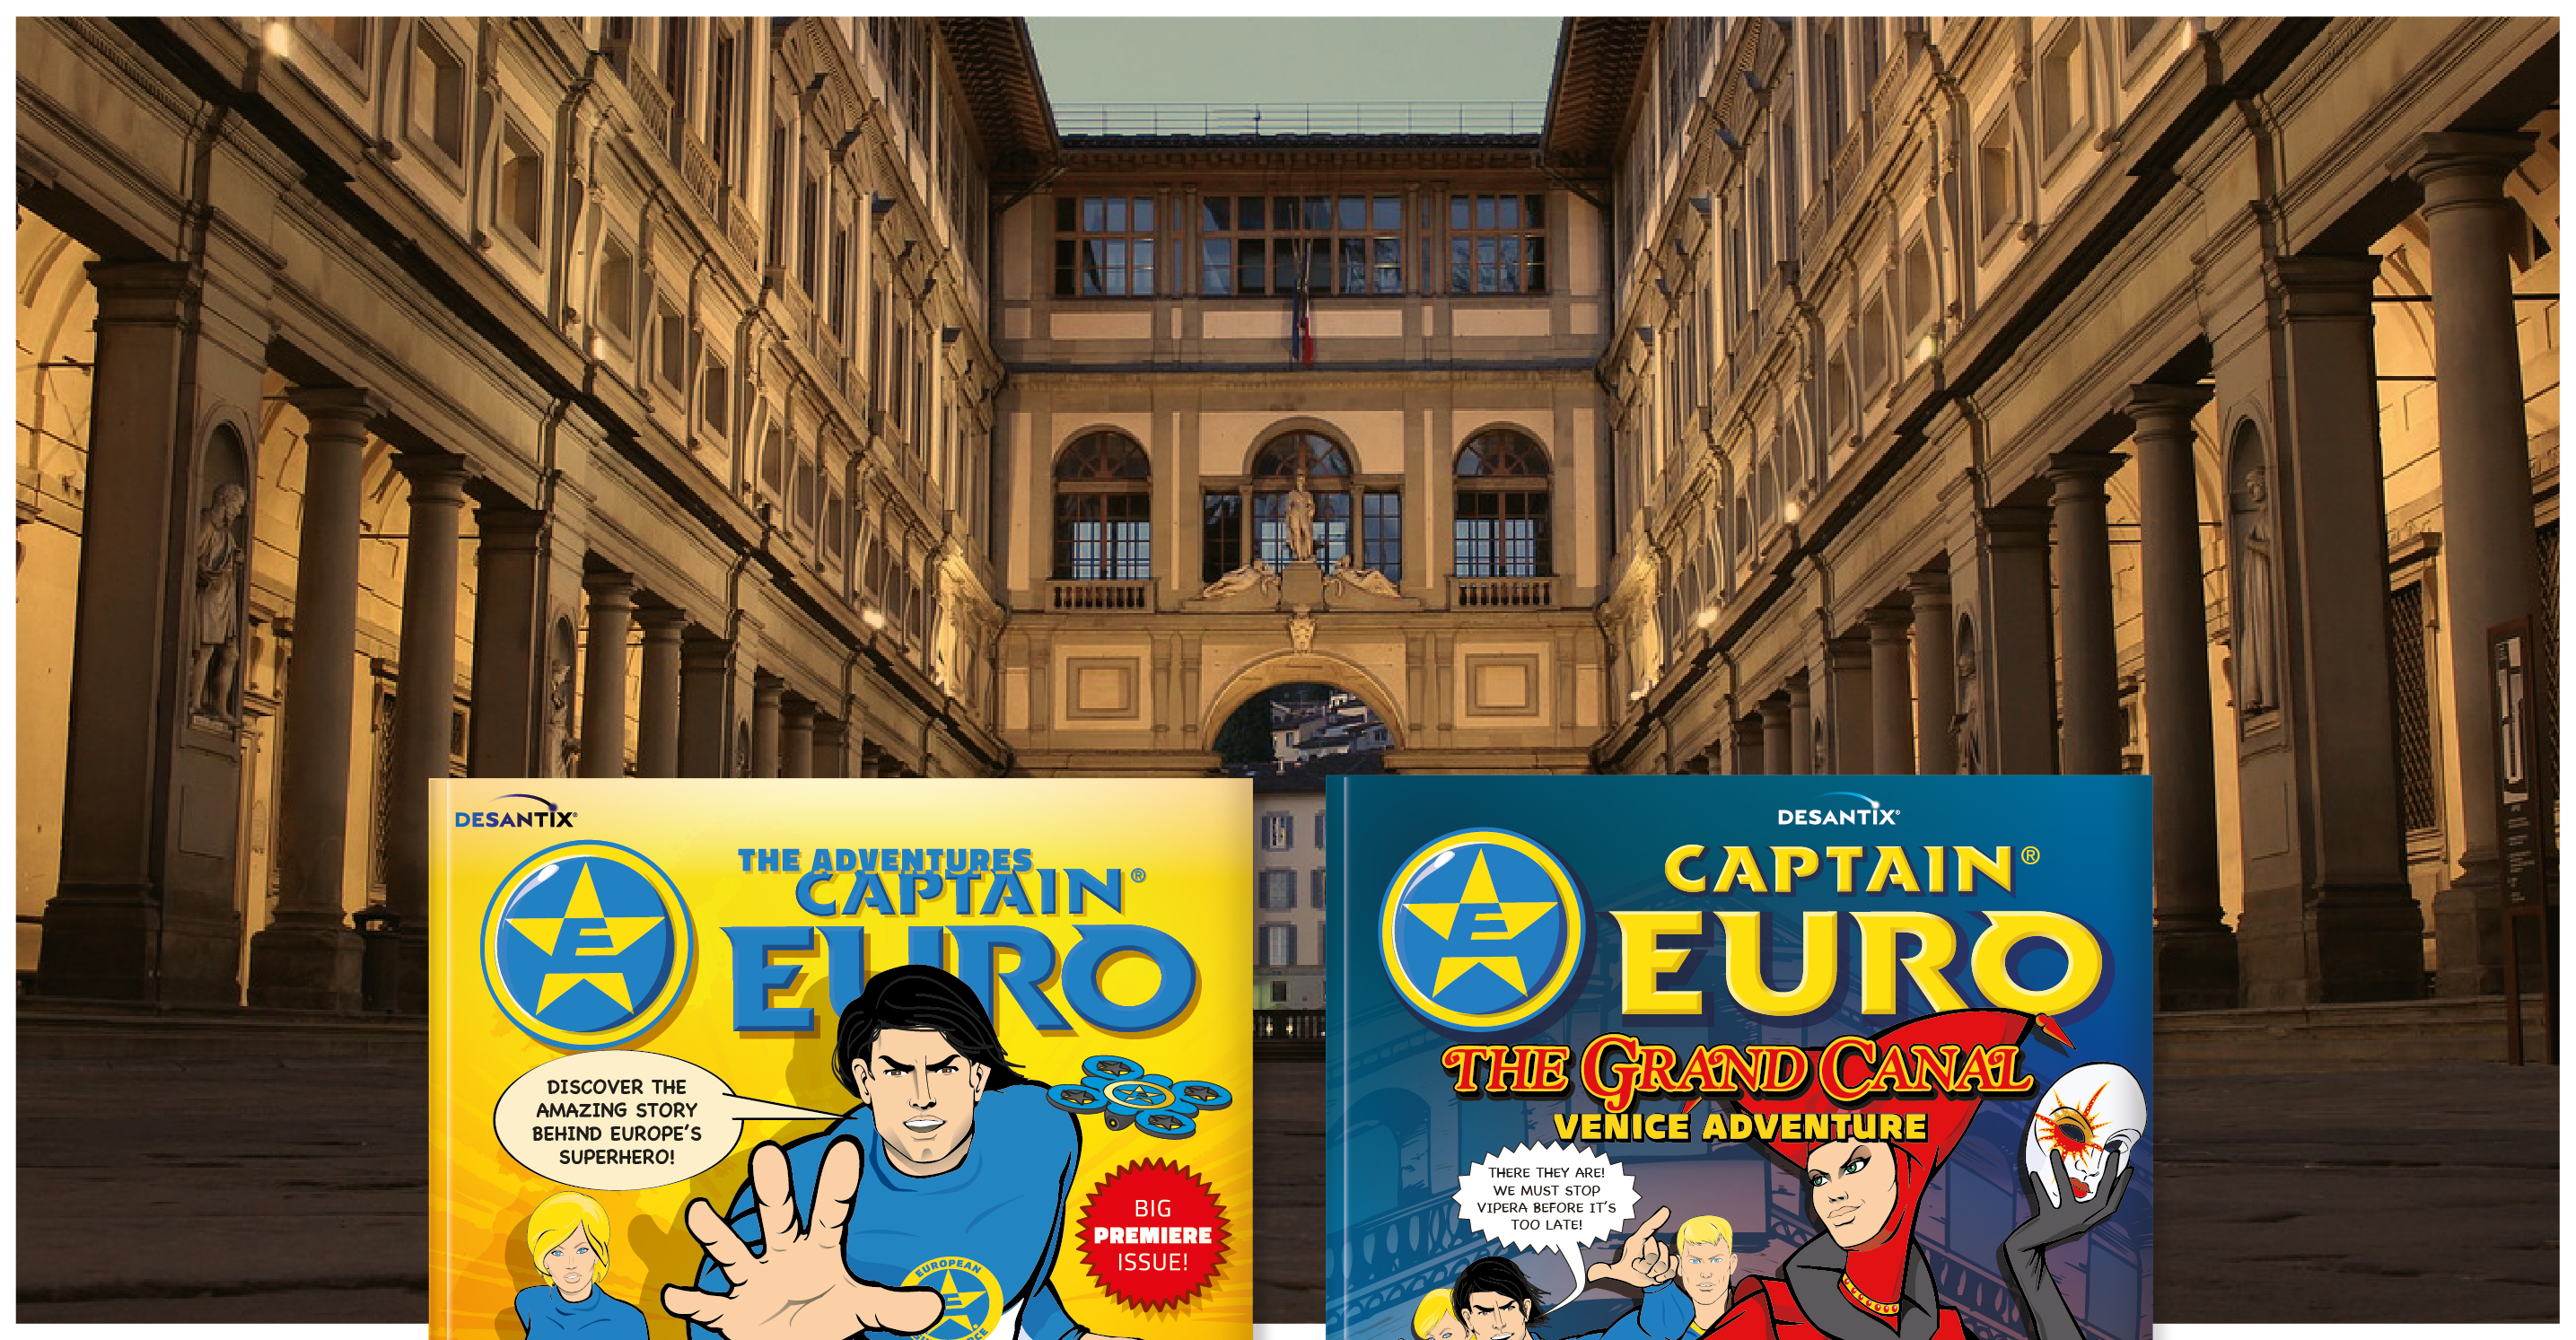 Captain Euro adventure comics at the Uffizi Gallery in Florence!